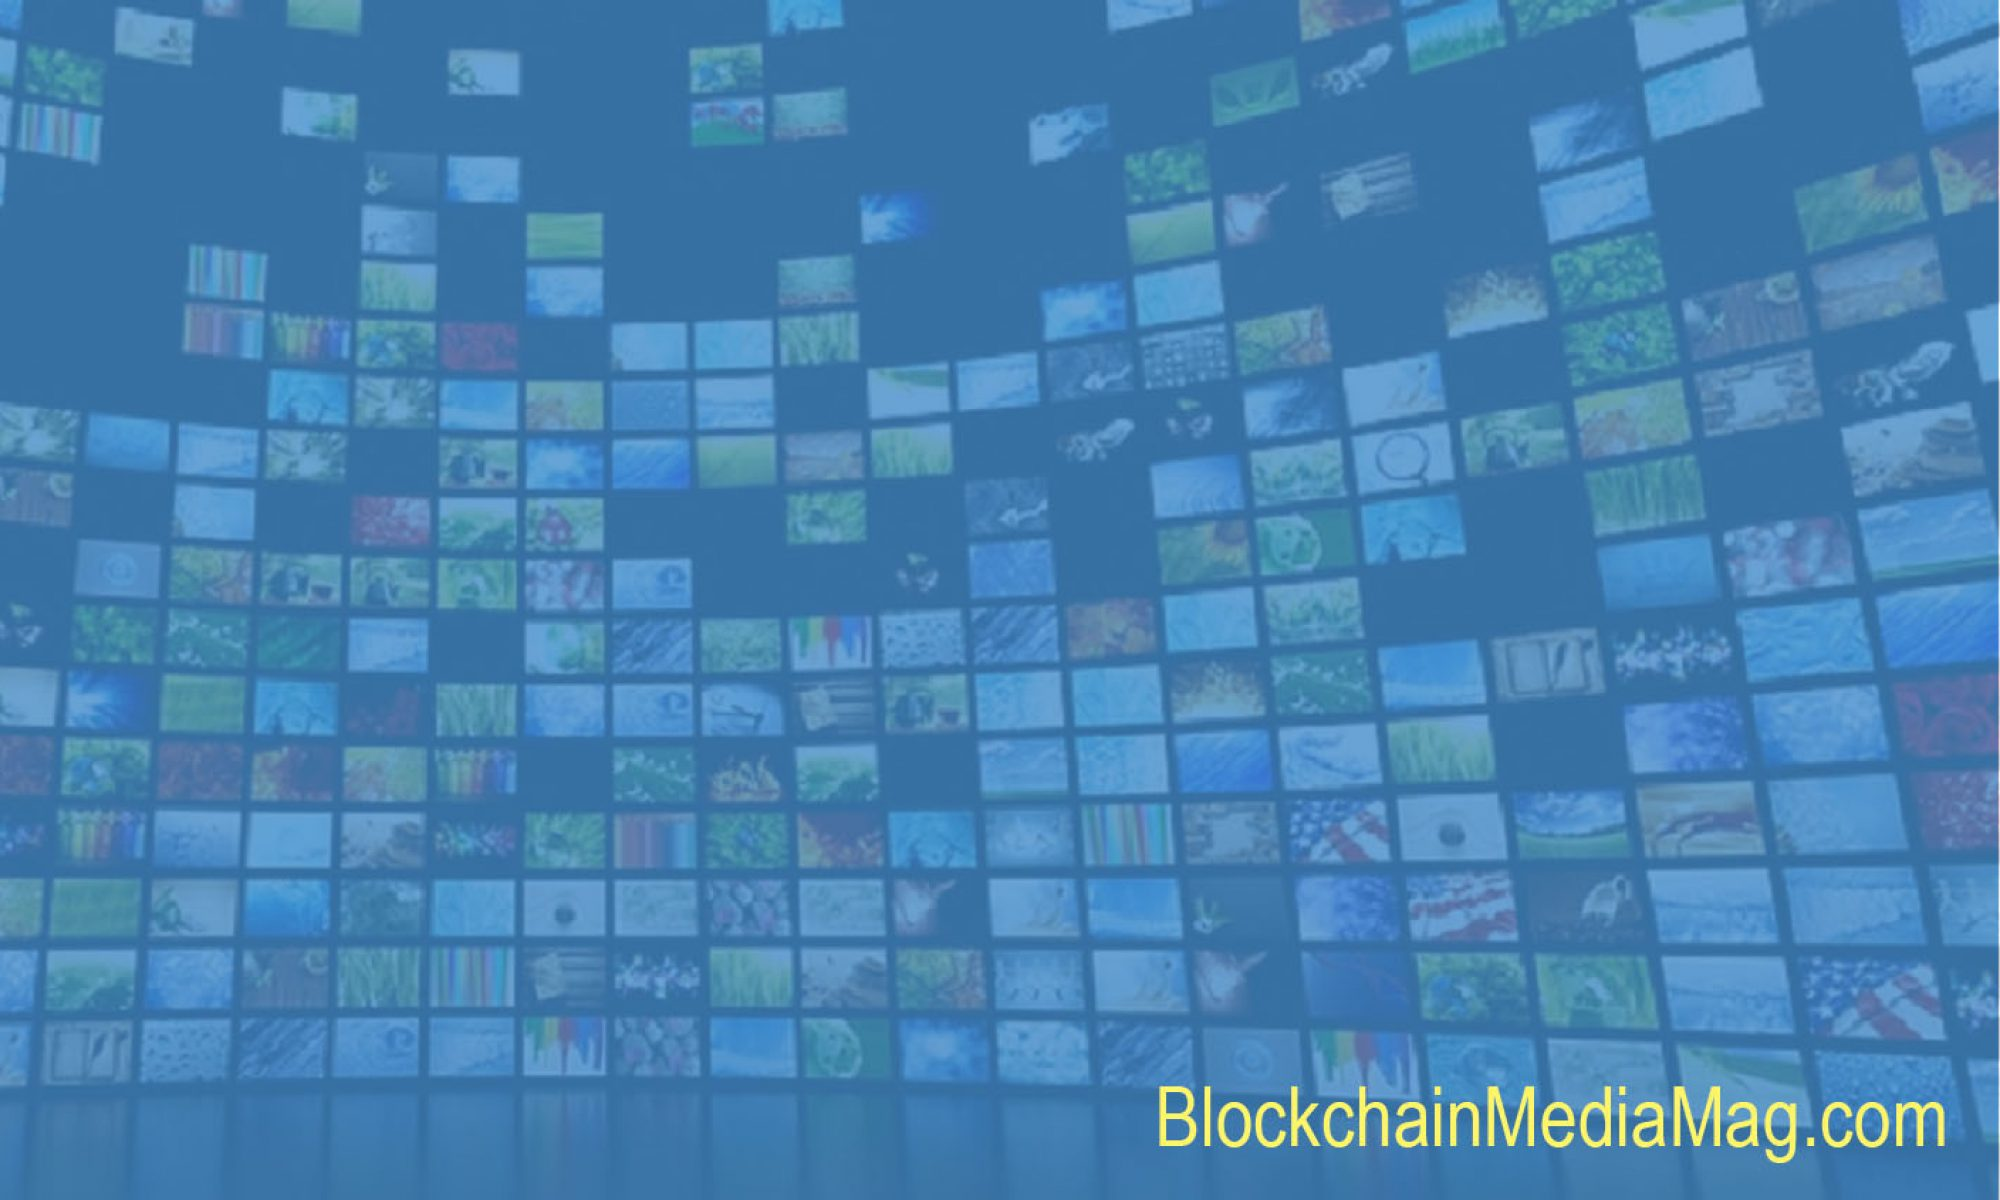 Blockchain Media Magazine